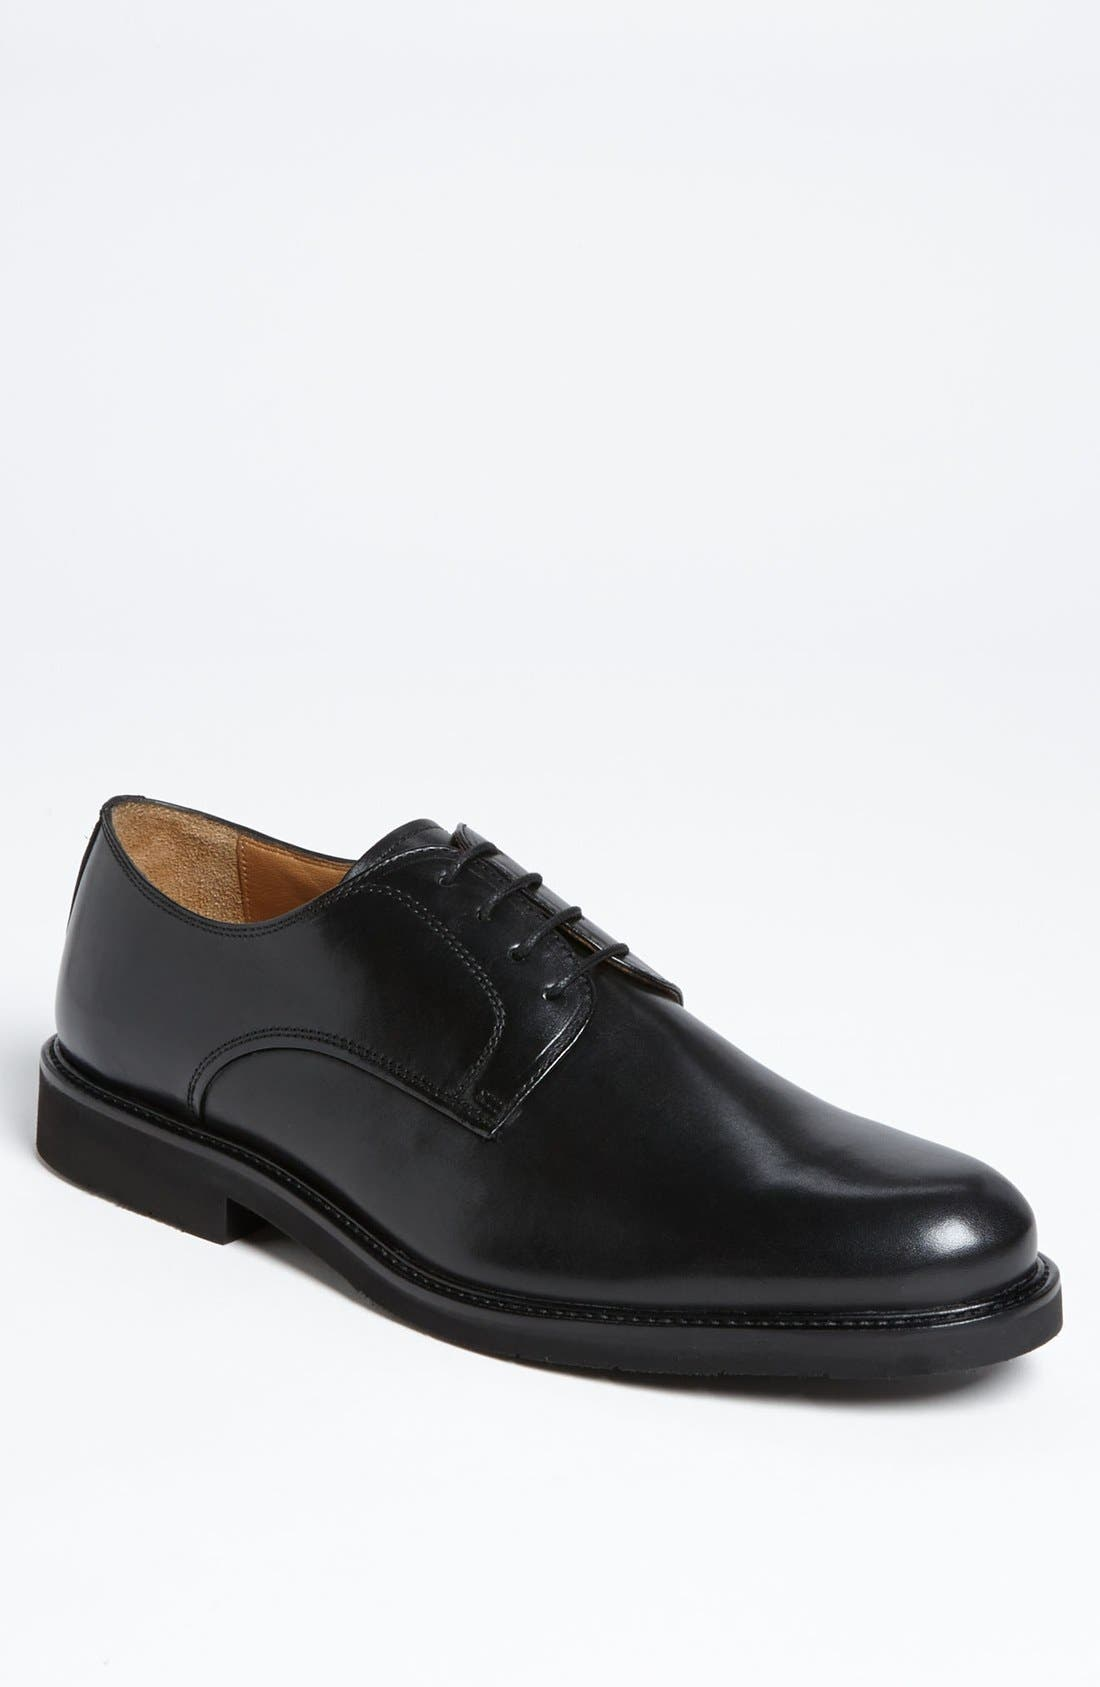 Alternate Image 1 Selected - Florsheim 'Gallo' Plain Toe Derby